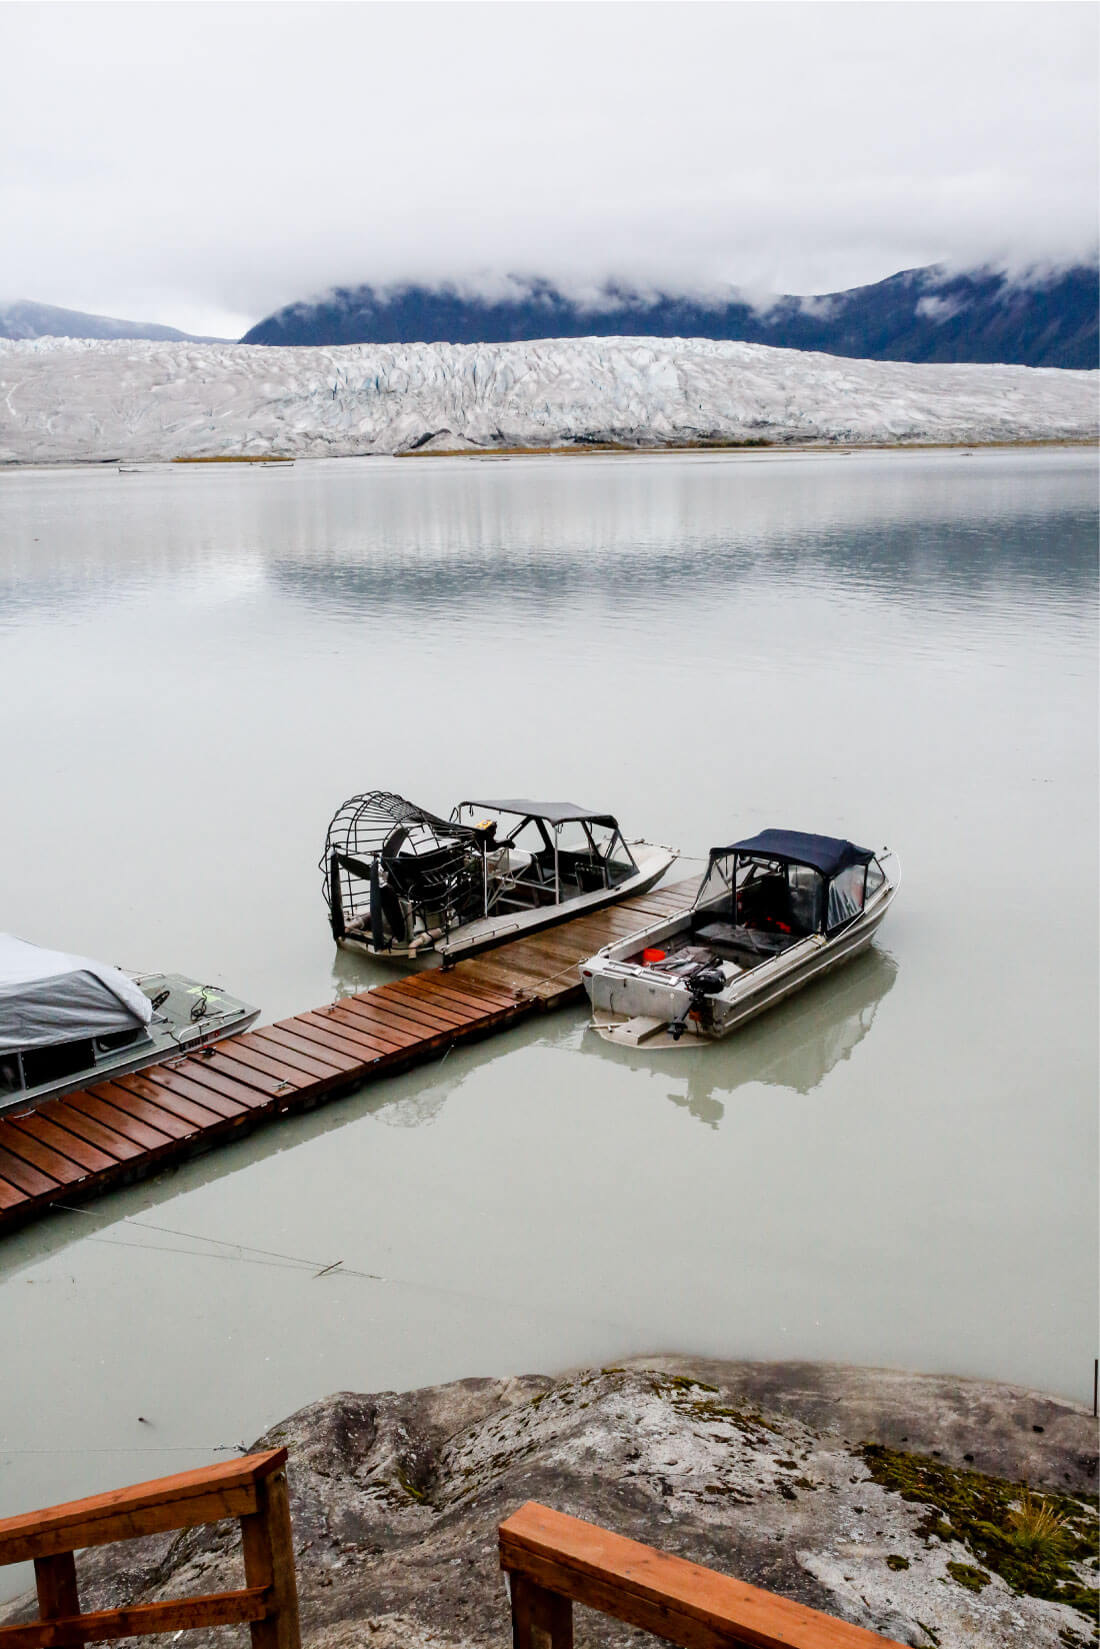 Alaska Cruise Excursions - one of the most amazing excursions I've ever been on! Go to Taku Glacier and experience it yourself. The airboat from www.thirtyhandmadedays.com